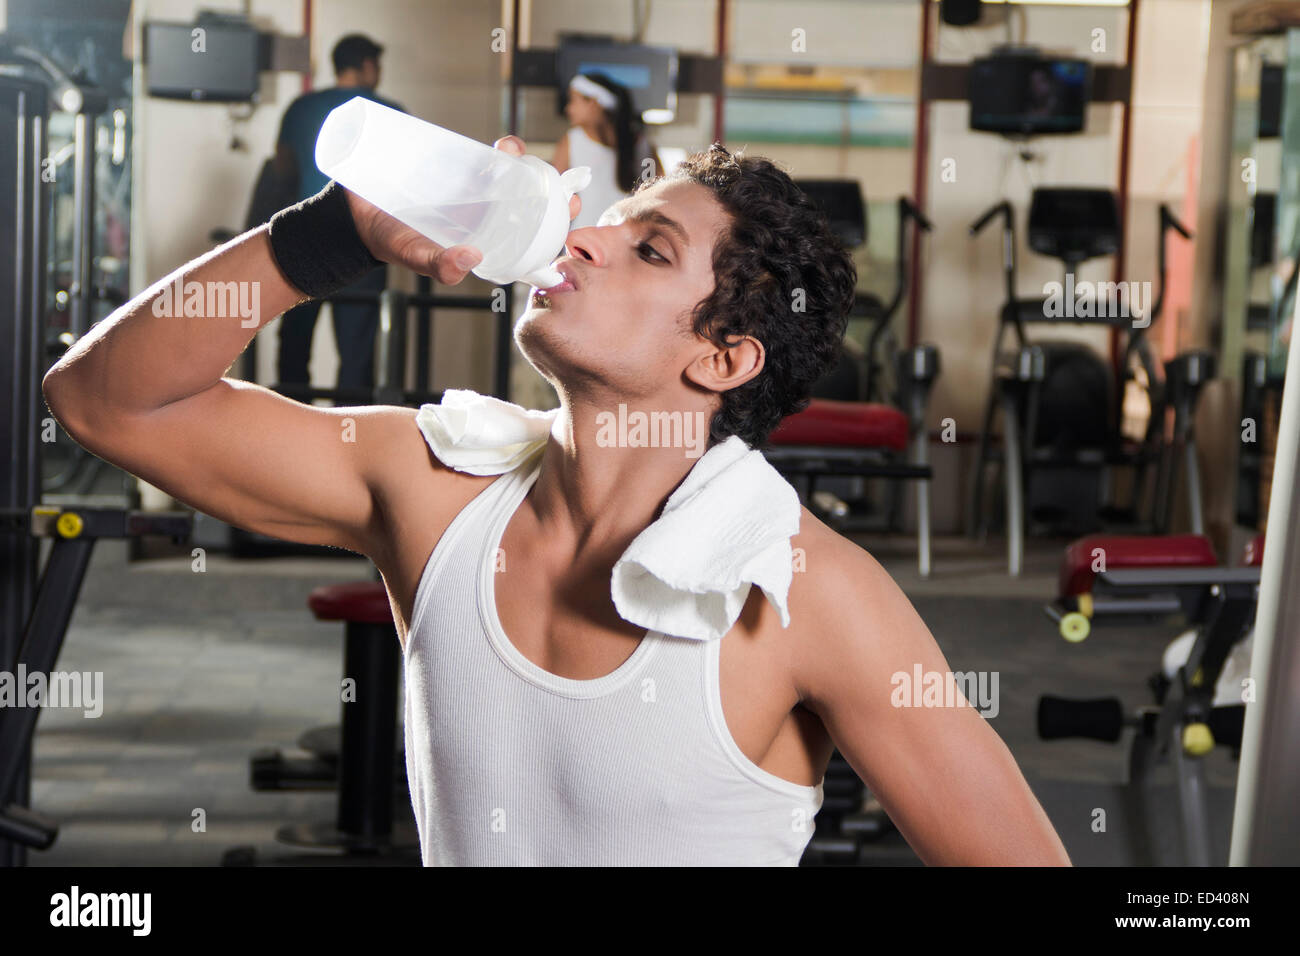 1 indian sports man gym drinking water stock photo royalty free 1 indian sports man gym drinking water sciox Choice Image